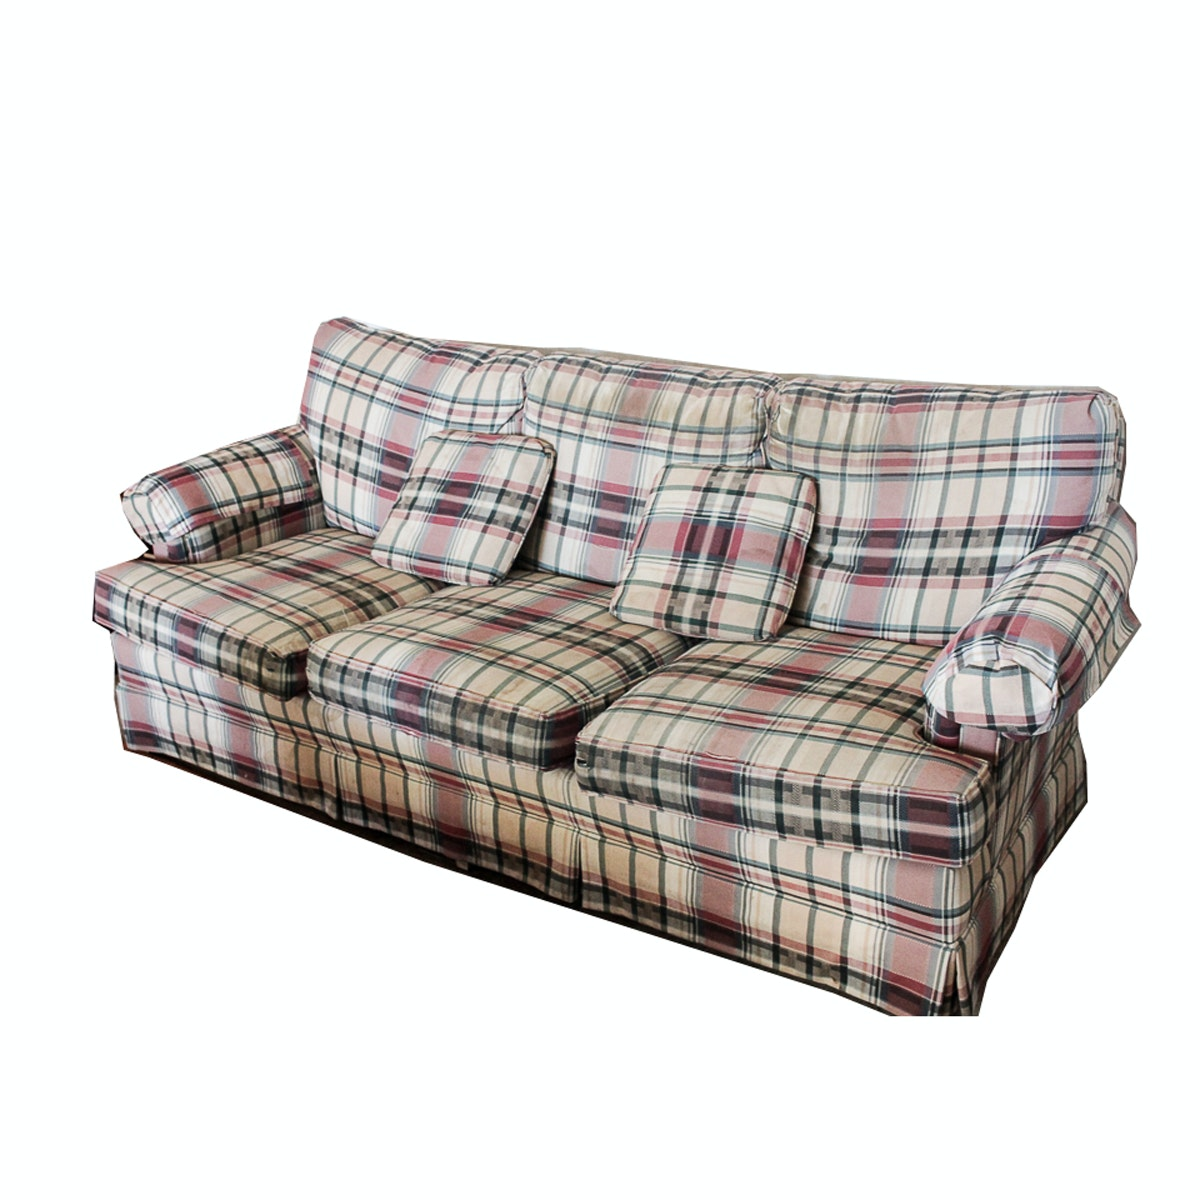 Plaid Upholstered Sofa by Drexel Heritage